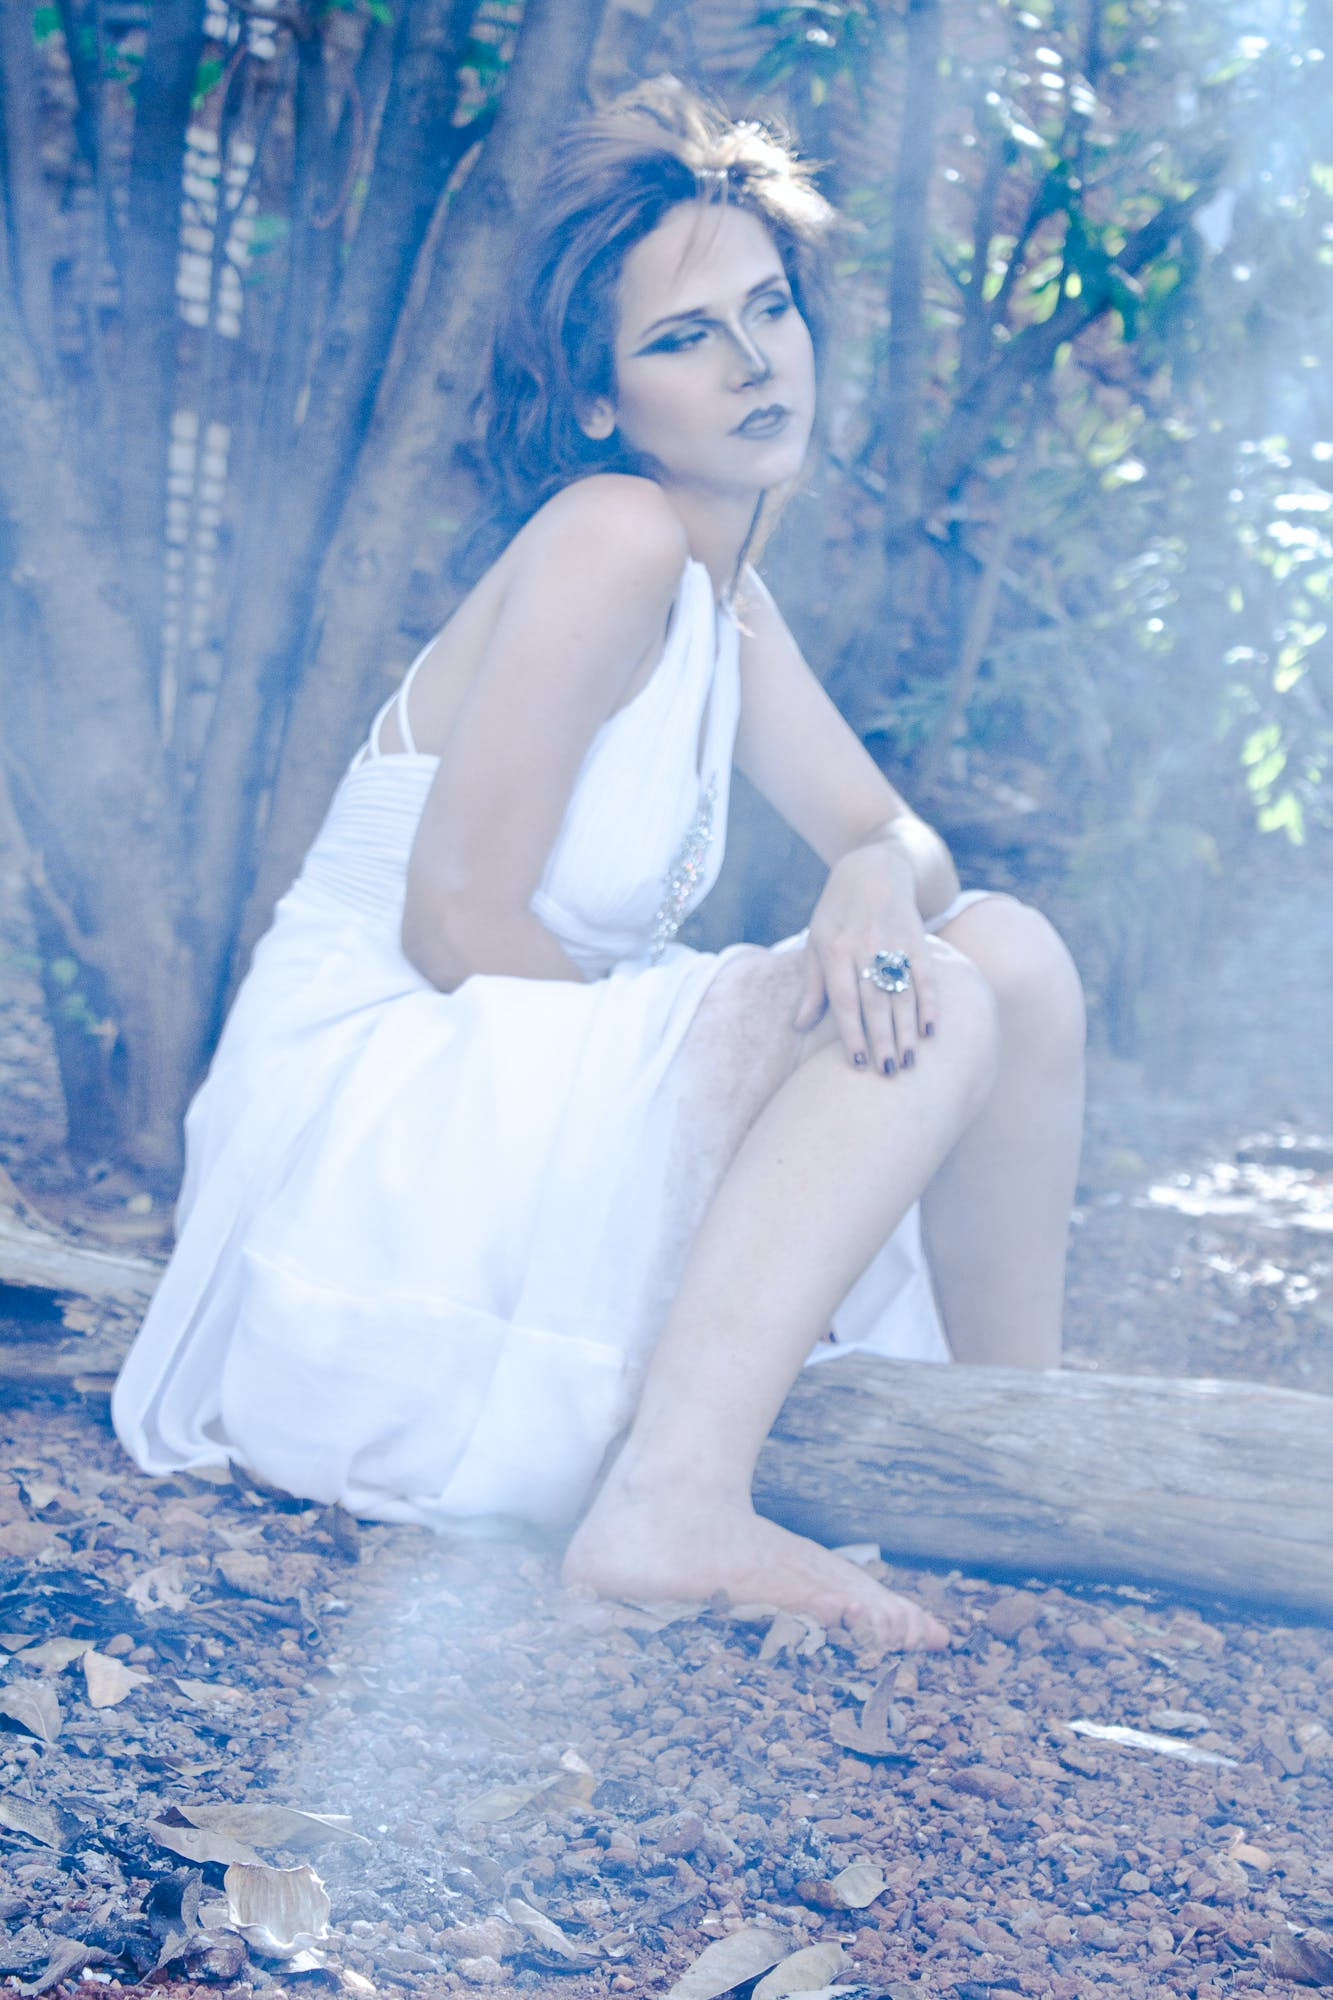 Female Wearing White Dress Photography